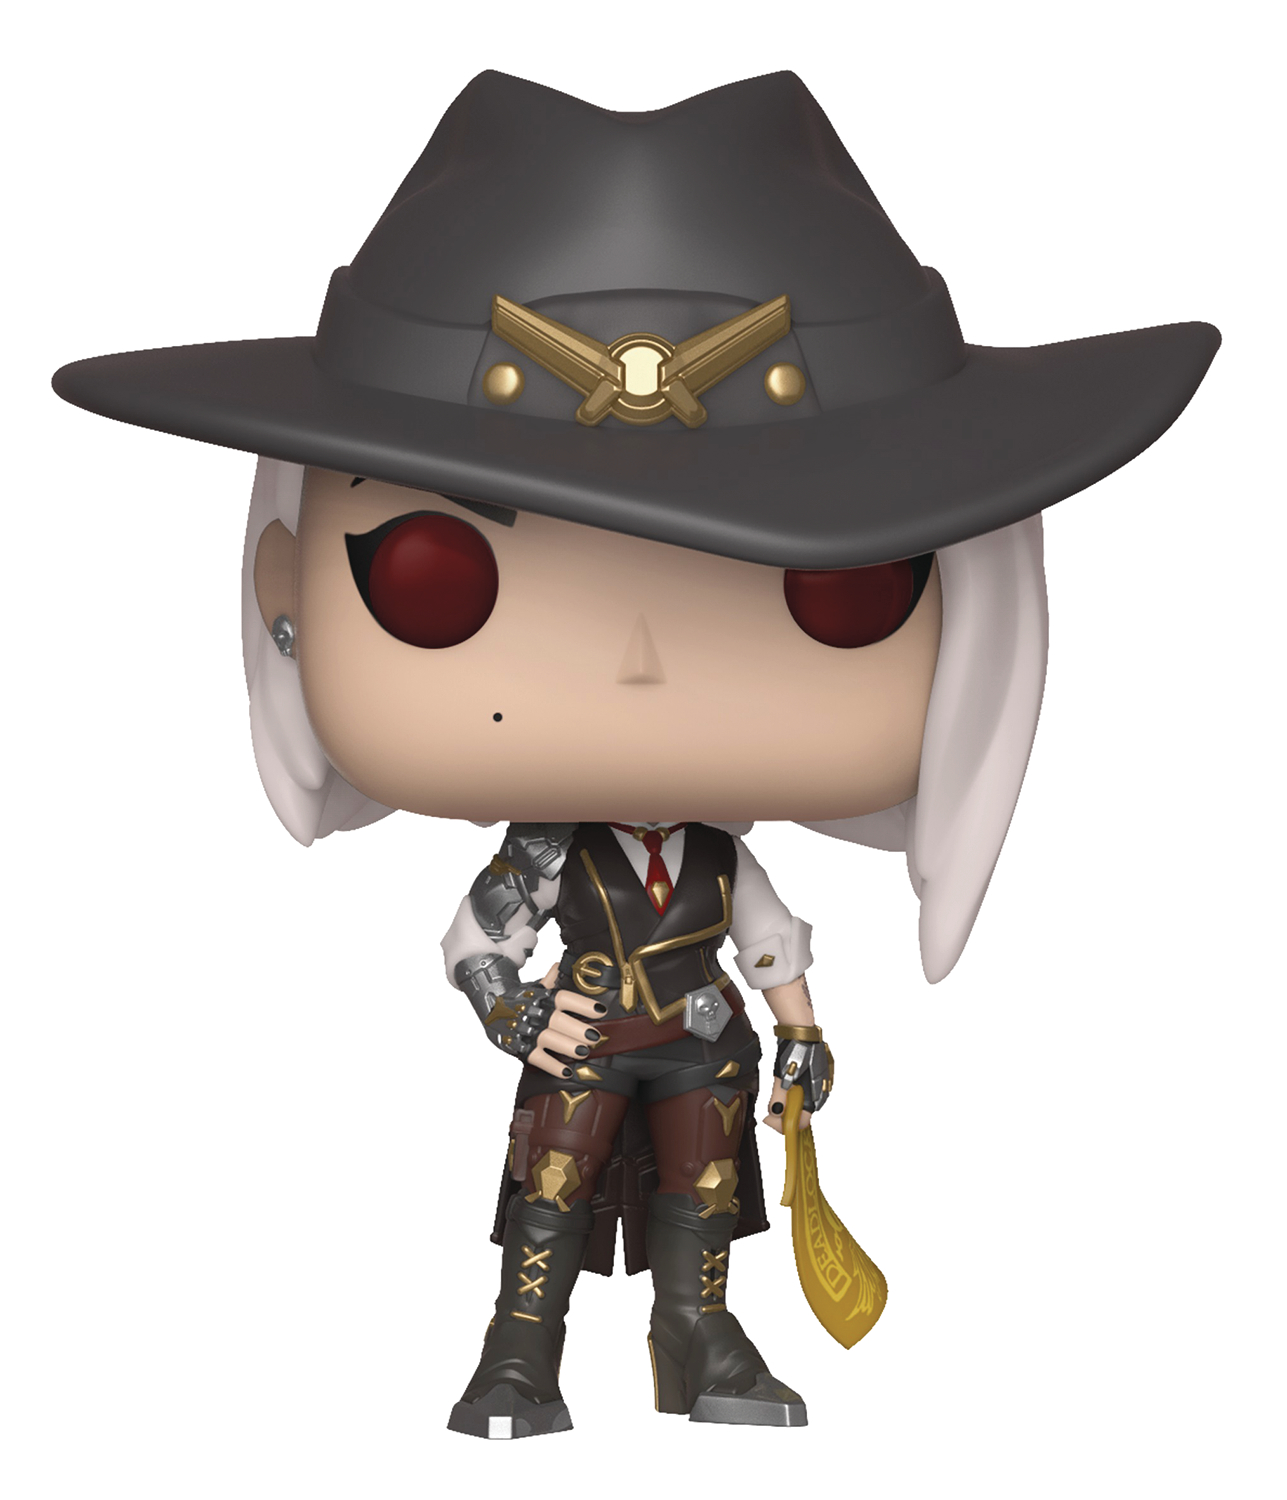 POP GAMES OVERWATCH S4 ASHE VINYL FIG